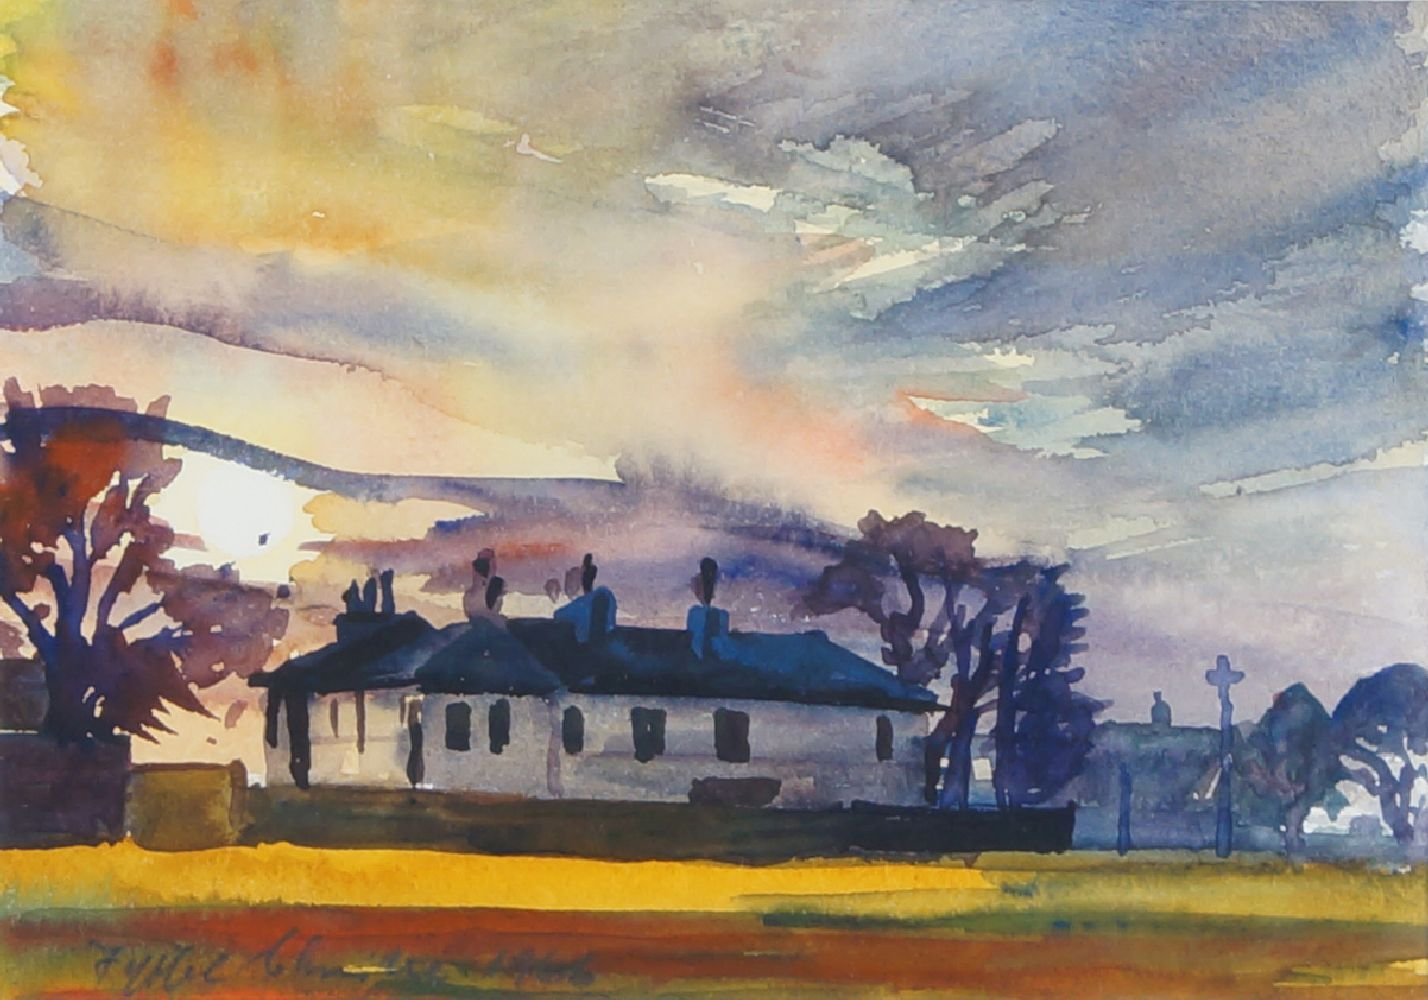 Fyffe Christie, British, 1918-1979- Millhouse, Blackheath Sunset; watercolour, signed and dated